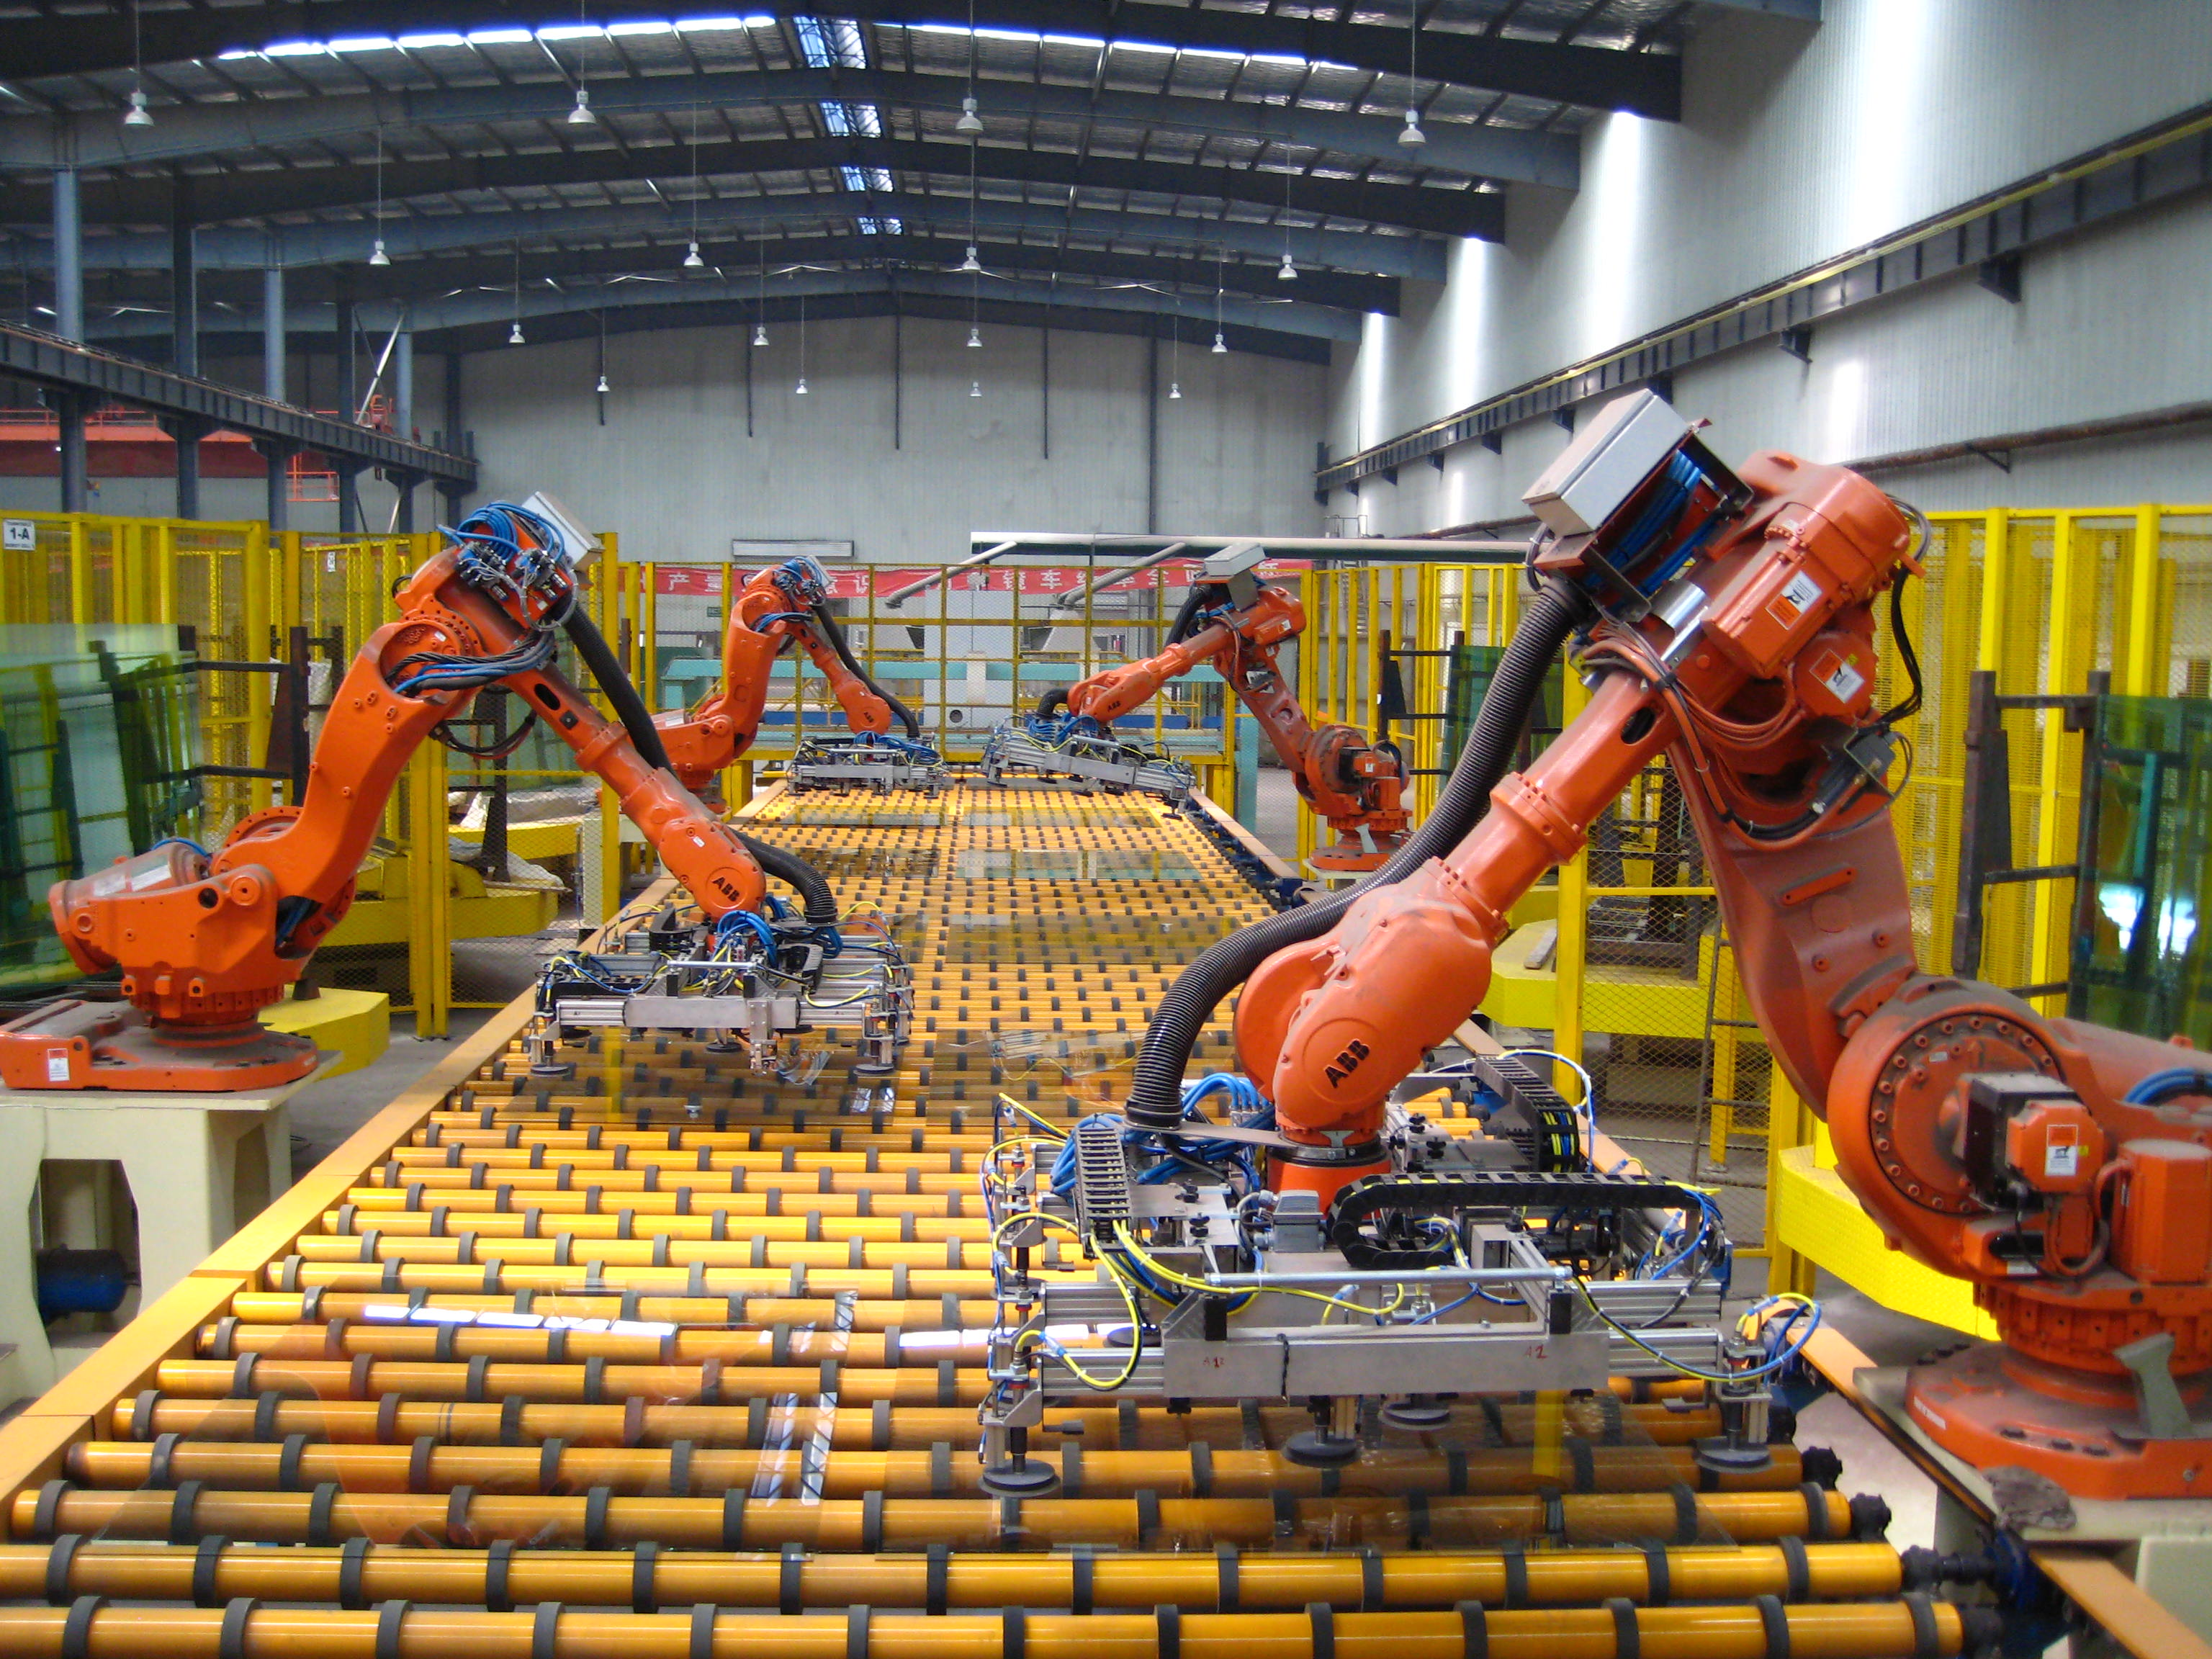 North American industry buys record numbers of robots